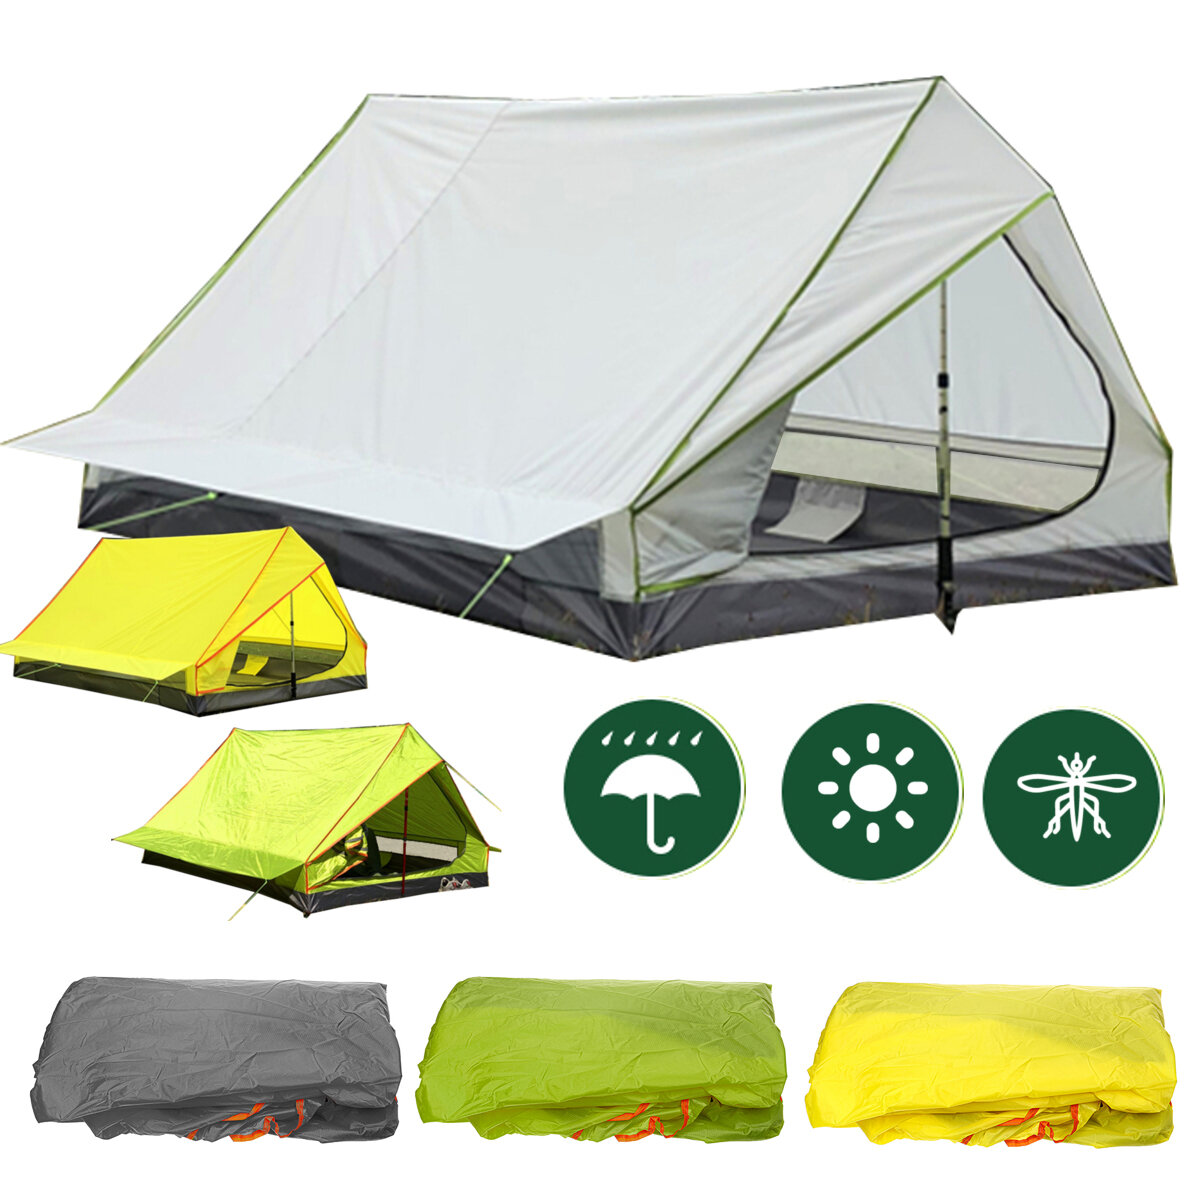 Multi-functional Waterproof Windproof Tent With Insect Net Ultralight Hammock Aerial Tent Portable Outdoor Camping 270x140cm - 1